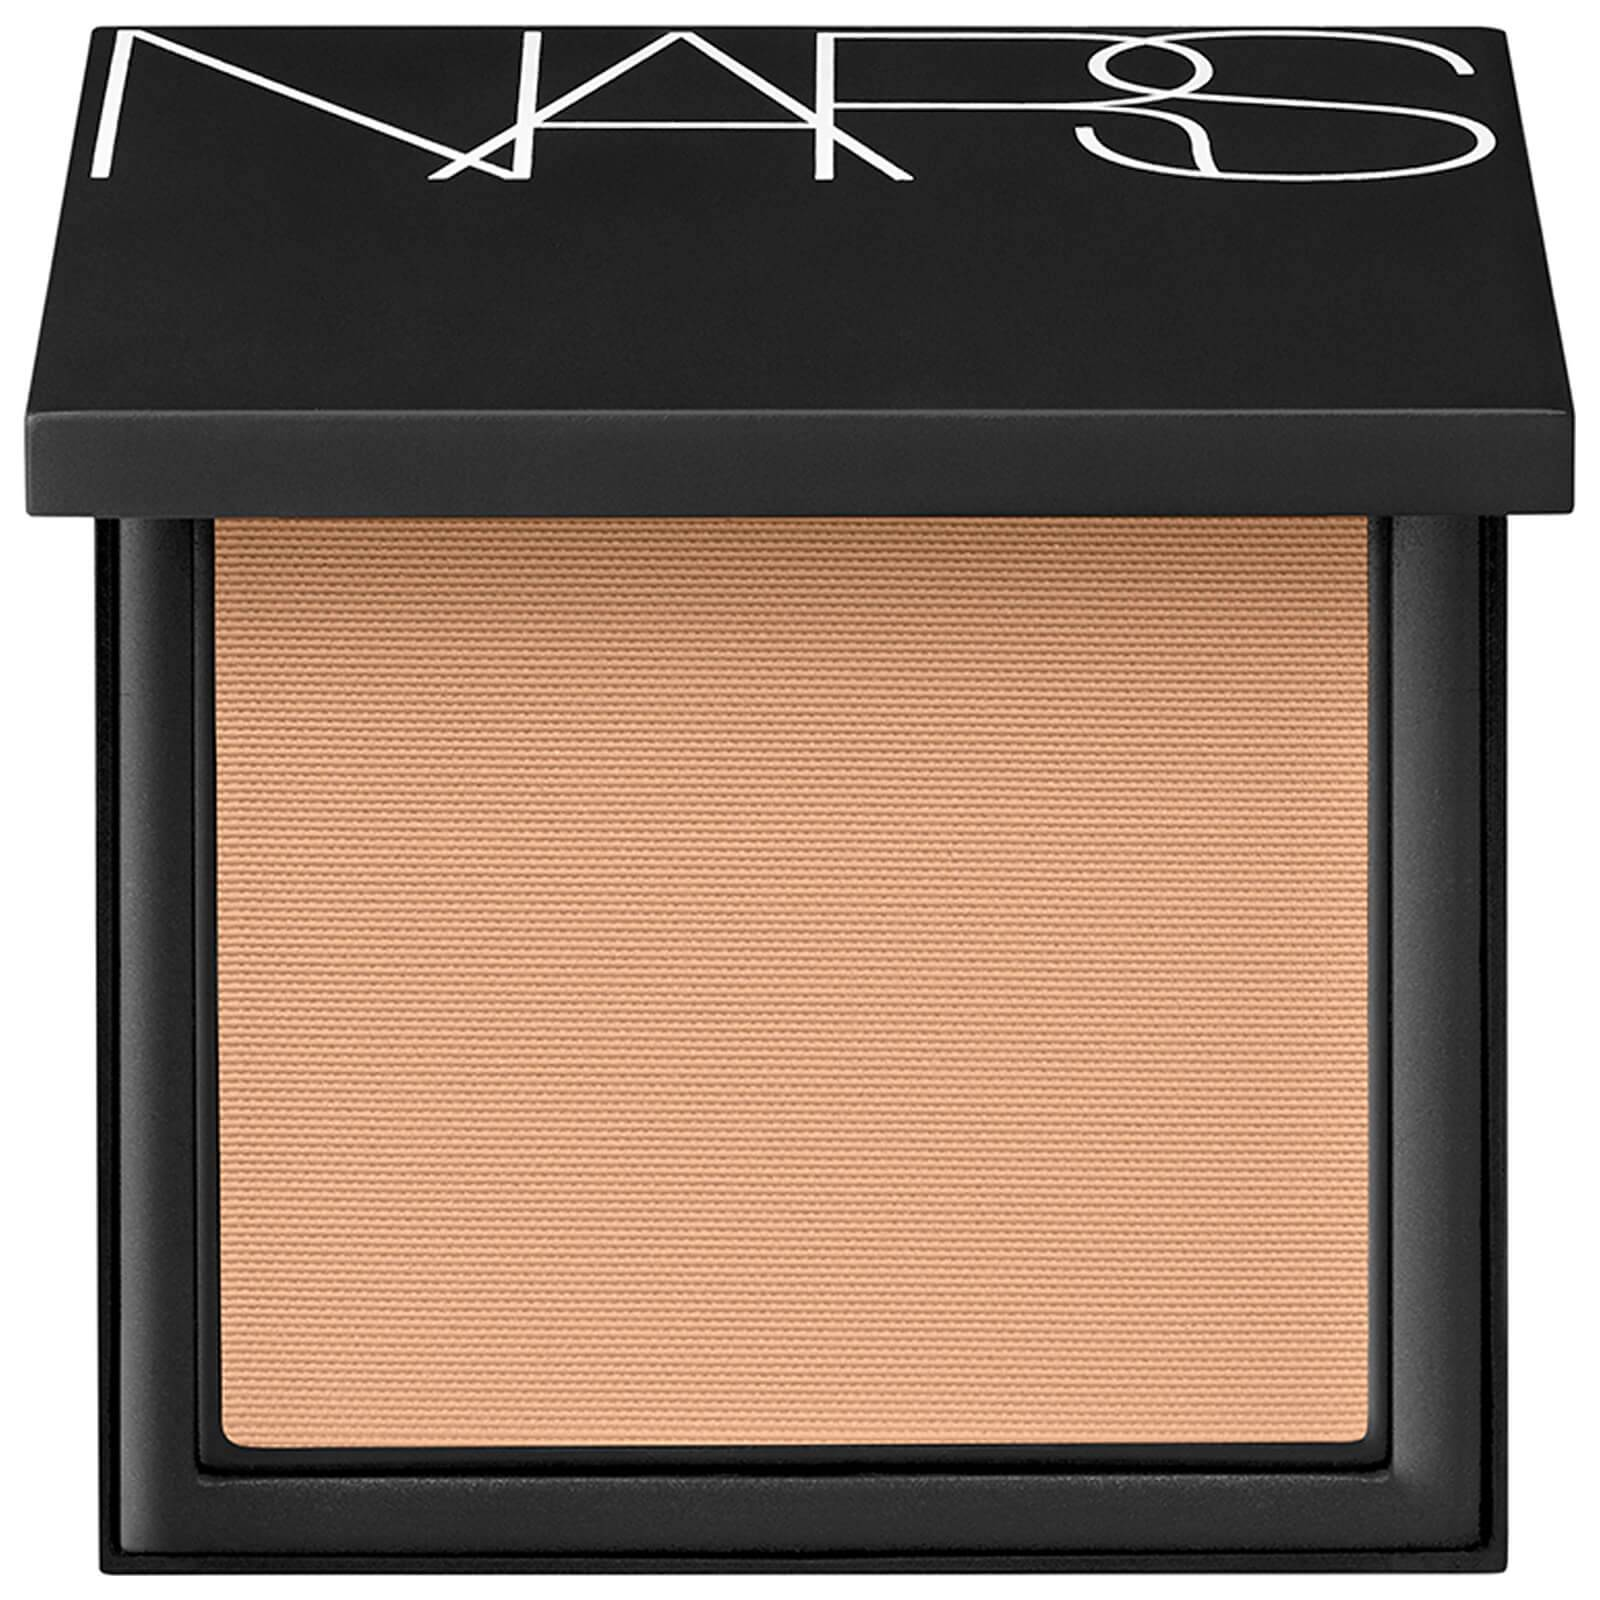 Nars Cosmetics Luminous Powder Foundation - Barcelona